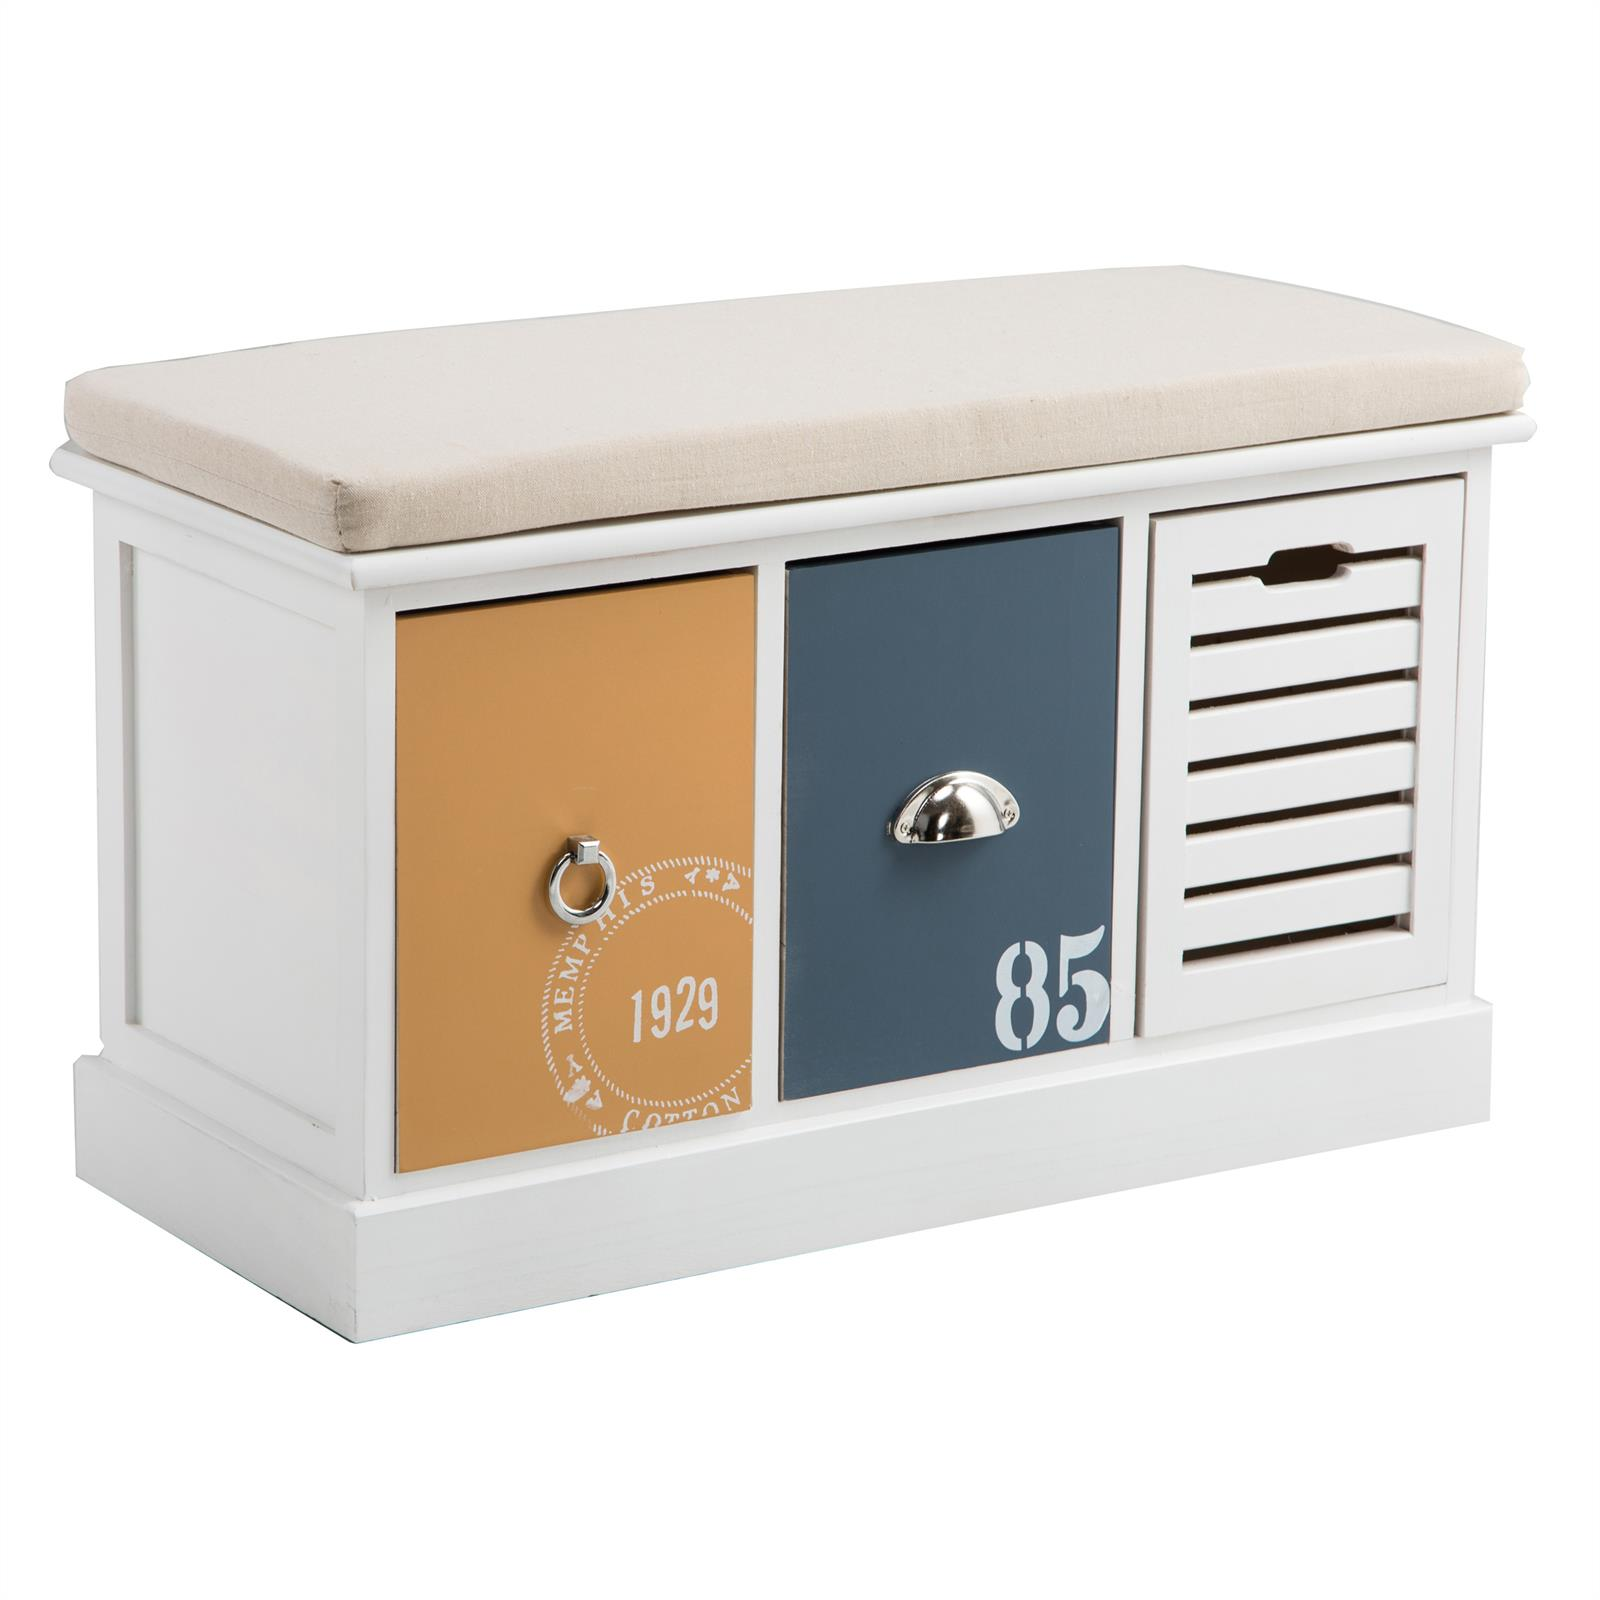 banc de rangement trient 3 casiers blanc orange et bleu mobil meubles. Black Bedroom Furniture Sets. Home Design Ideas